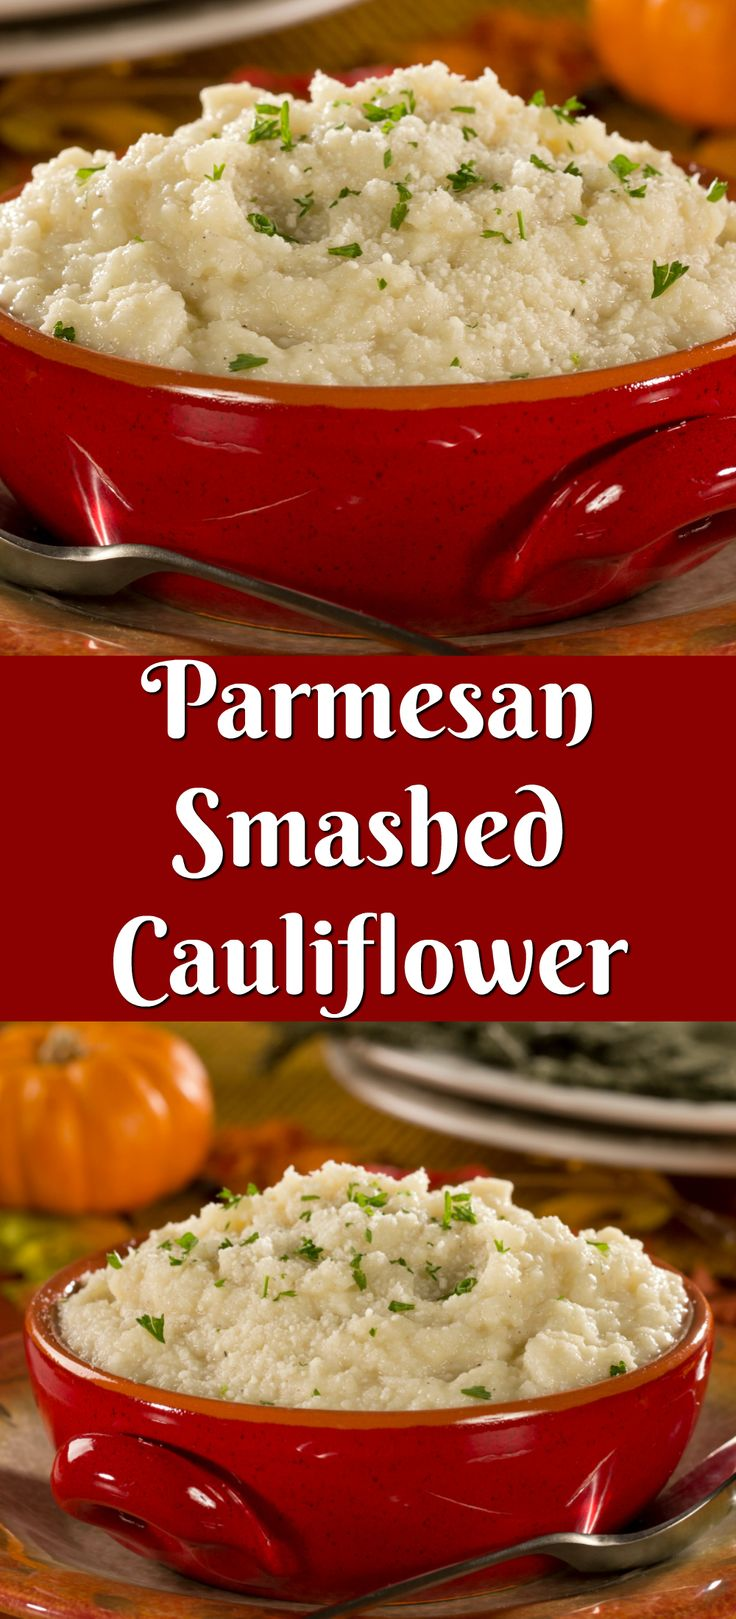 55 best healthy holiday recipes images on pinterest diabetic parmesan mashed cauliflower meal recipesdiabetic recipesdinner forumfinder Choice Image